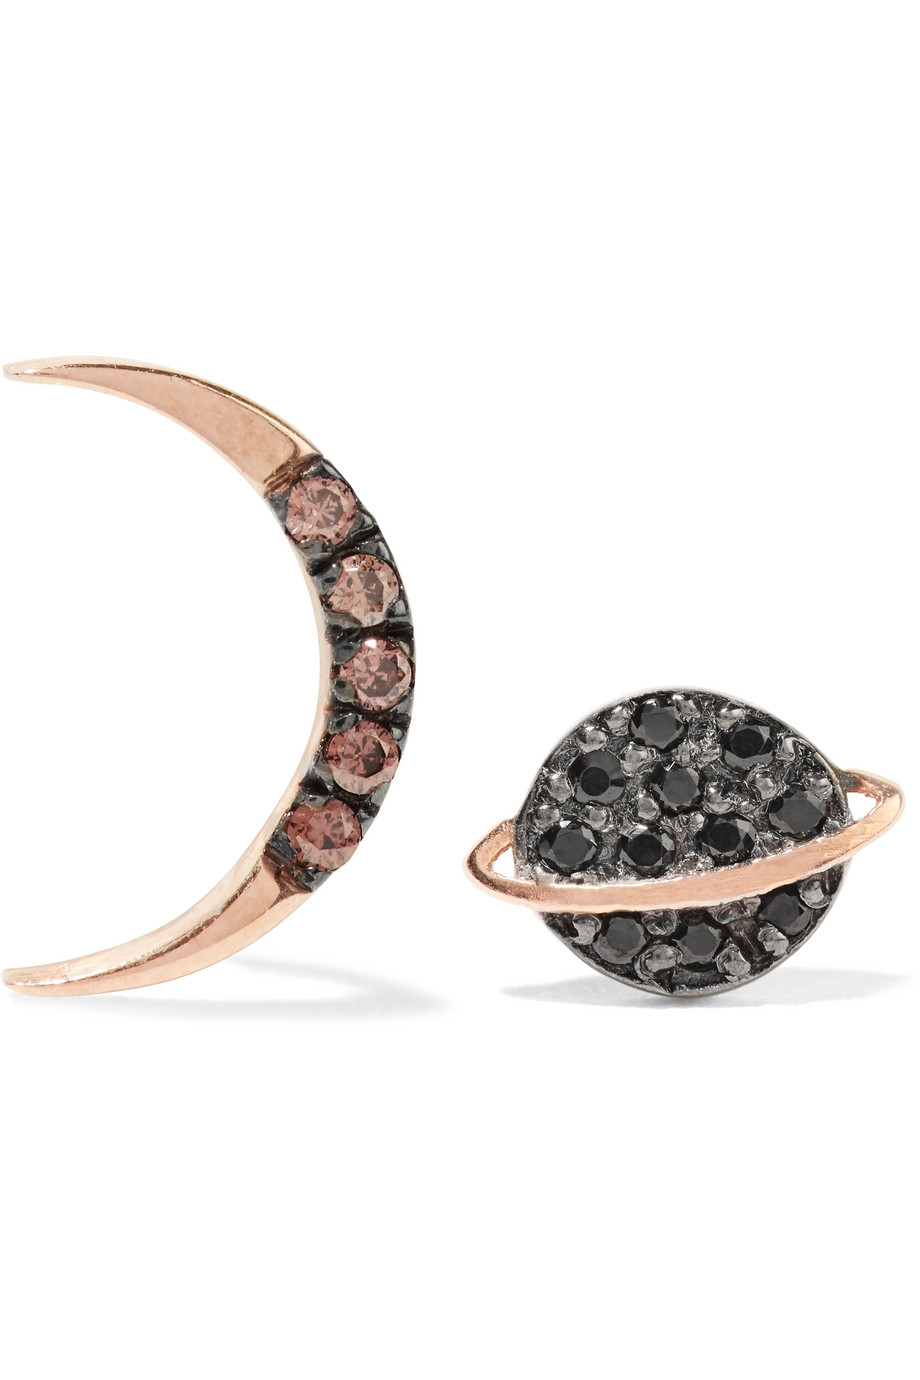 Saturn Half Moon Rose Gold-Plated Zircon Earrings, Rose Gold/Black, Women's